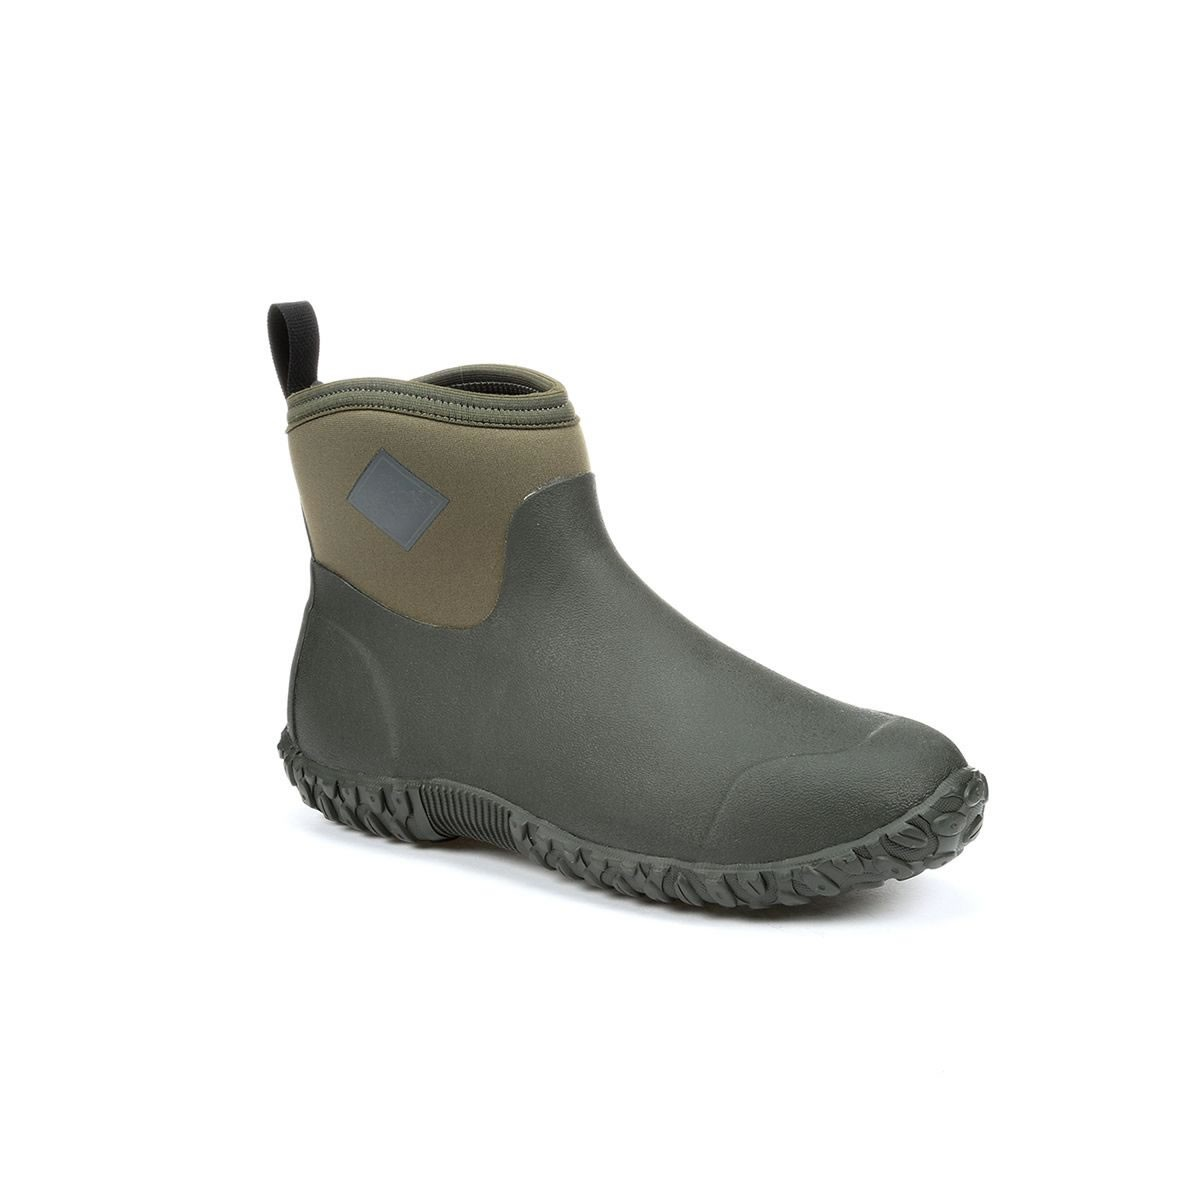 Muck Boot Mens Muckster Ankle Moss Size 9 UK